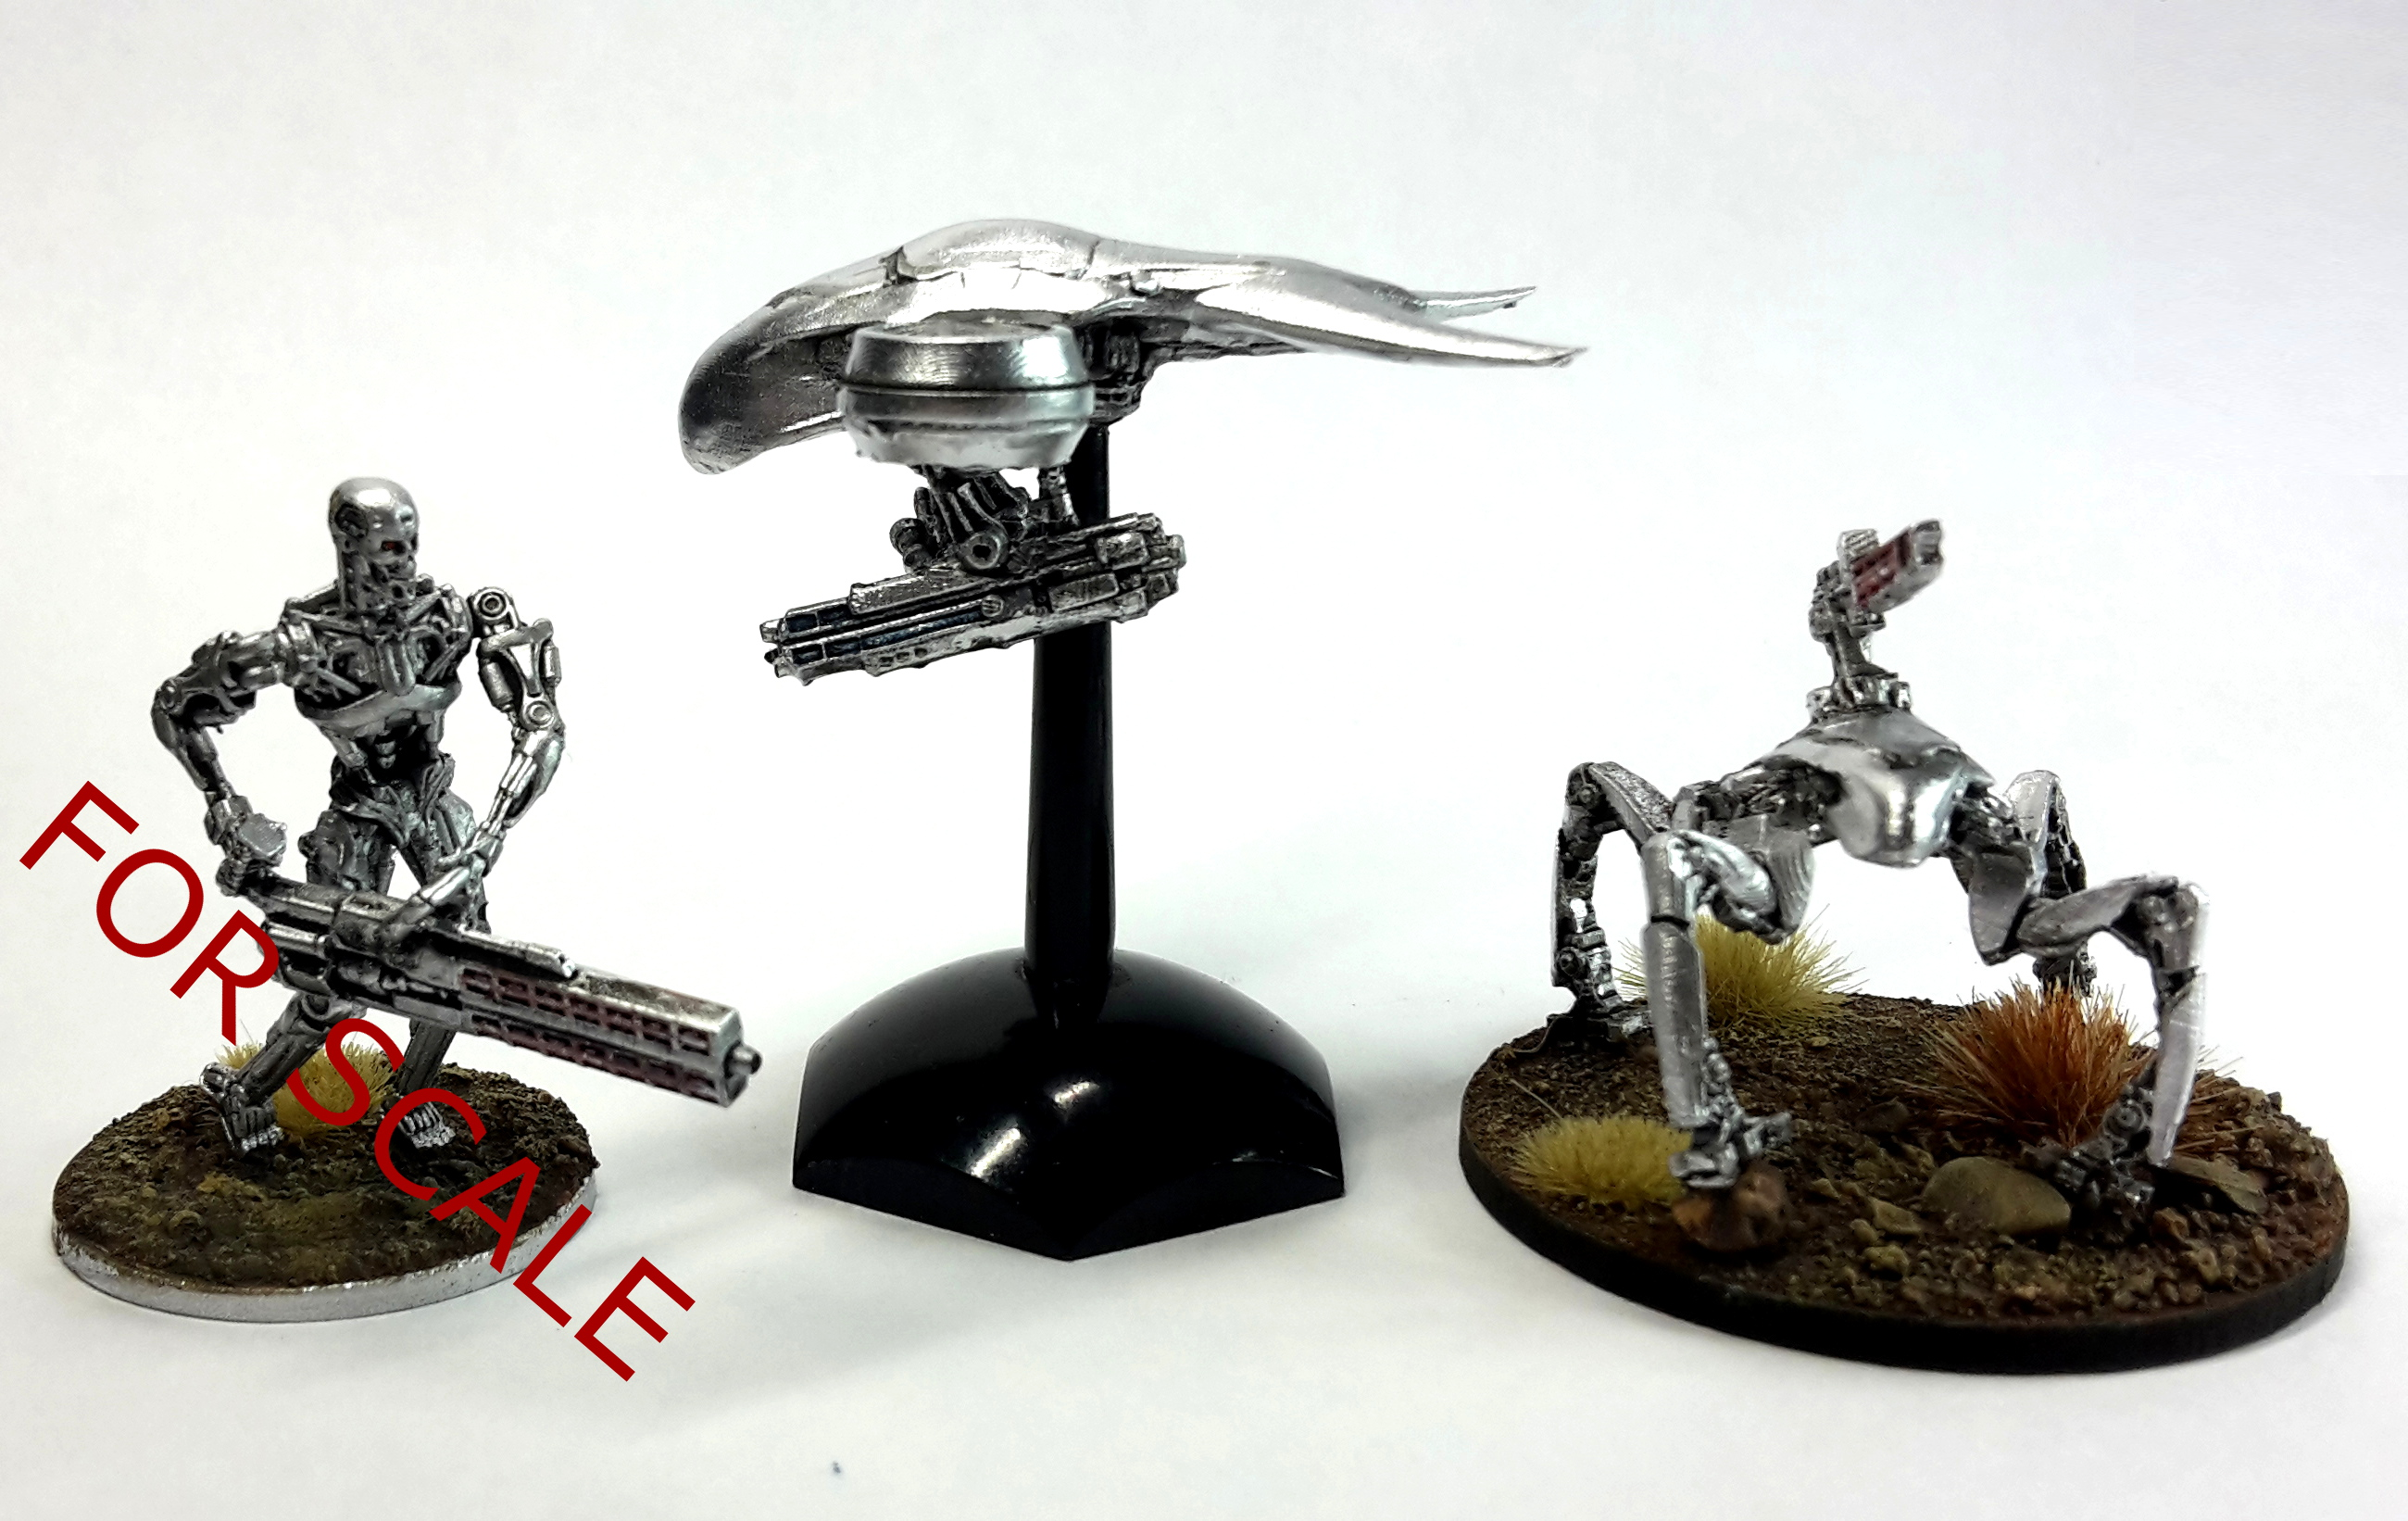 HK-8 Flying Drone aka 'Buzzer' and T-72 Gun Platform aka 'Spider-dog' set for Terminator Genisys The Miniatures Game by River Horse